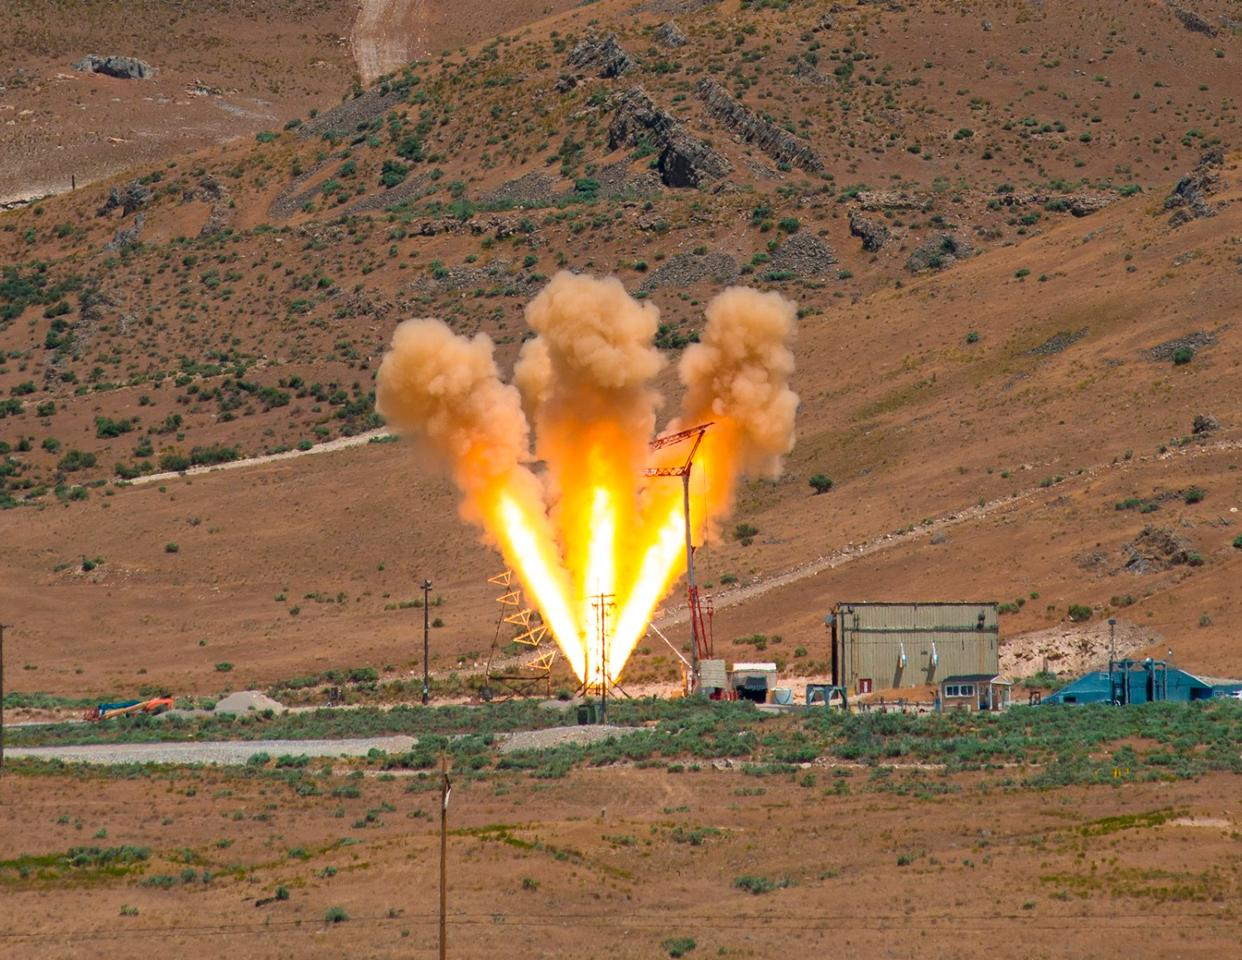 The test firing of the abort rocket motor follows years of component tests